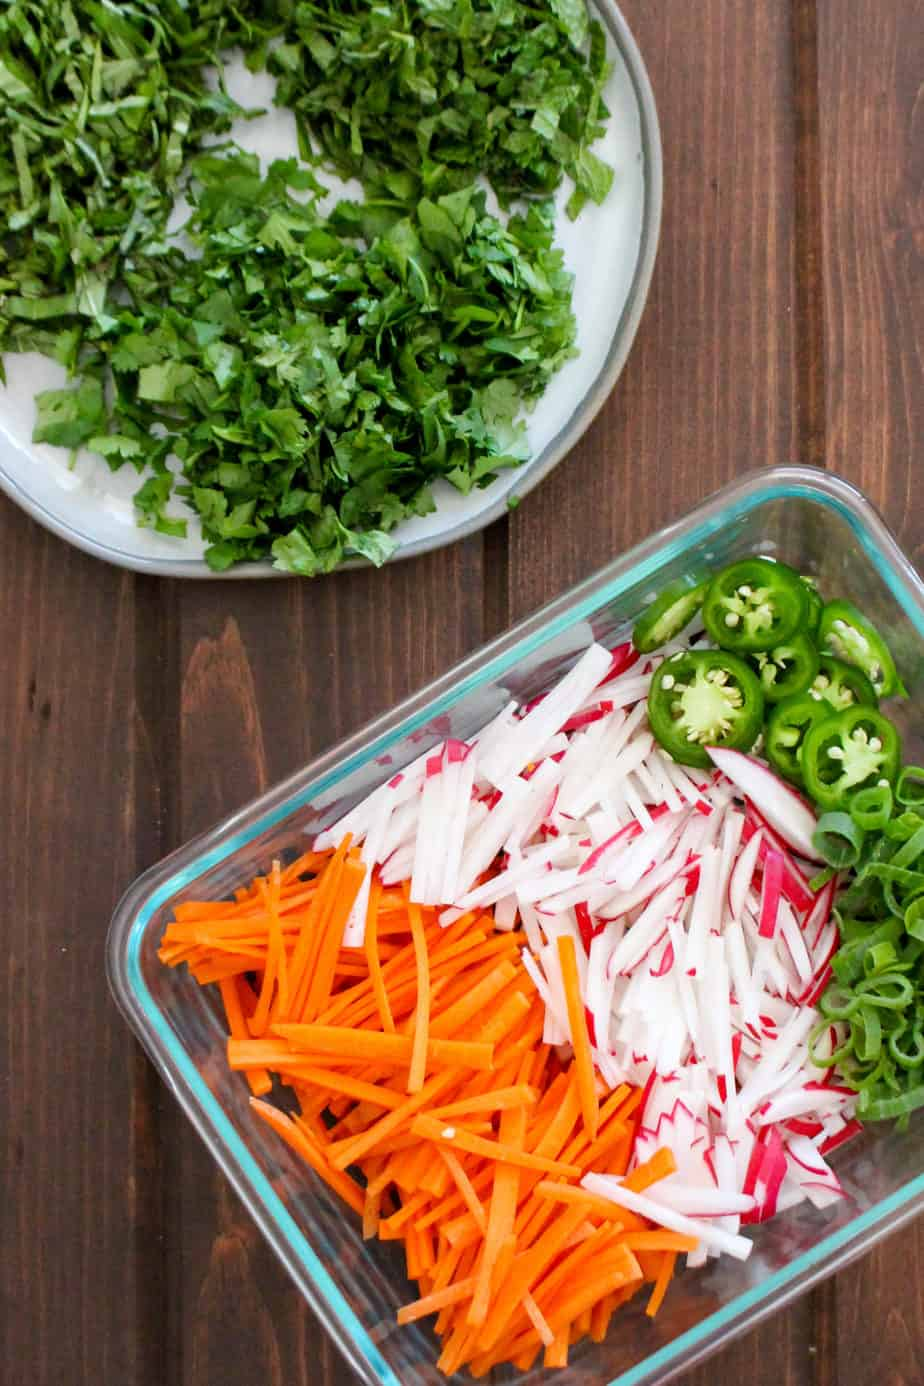 Quick Pickled Veggies and Herbs for Vietnamese Bun Cha Salad by Frugal Nutrition